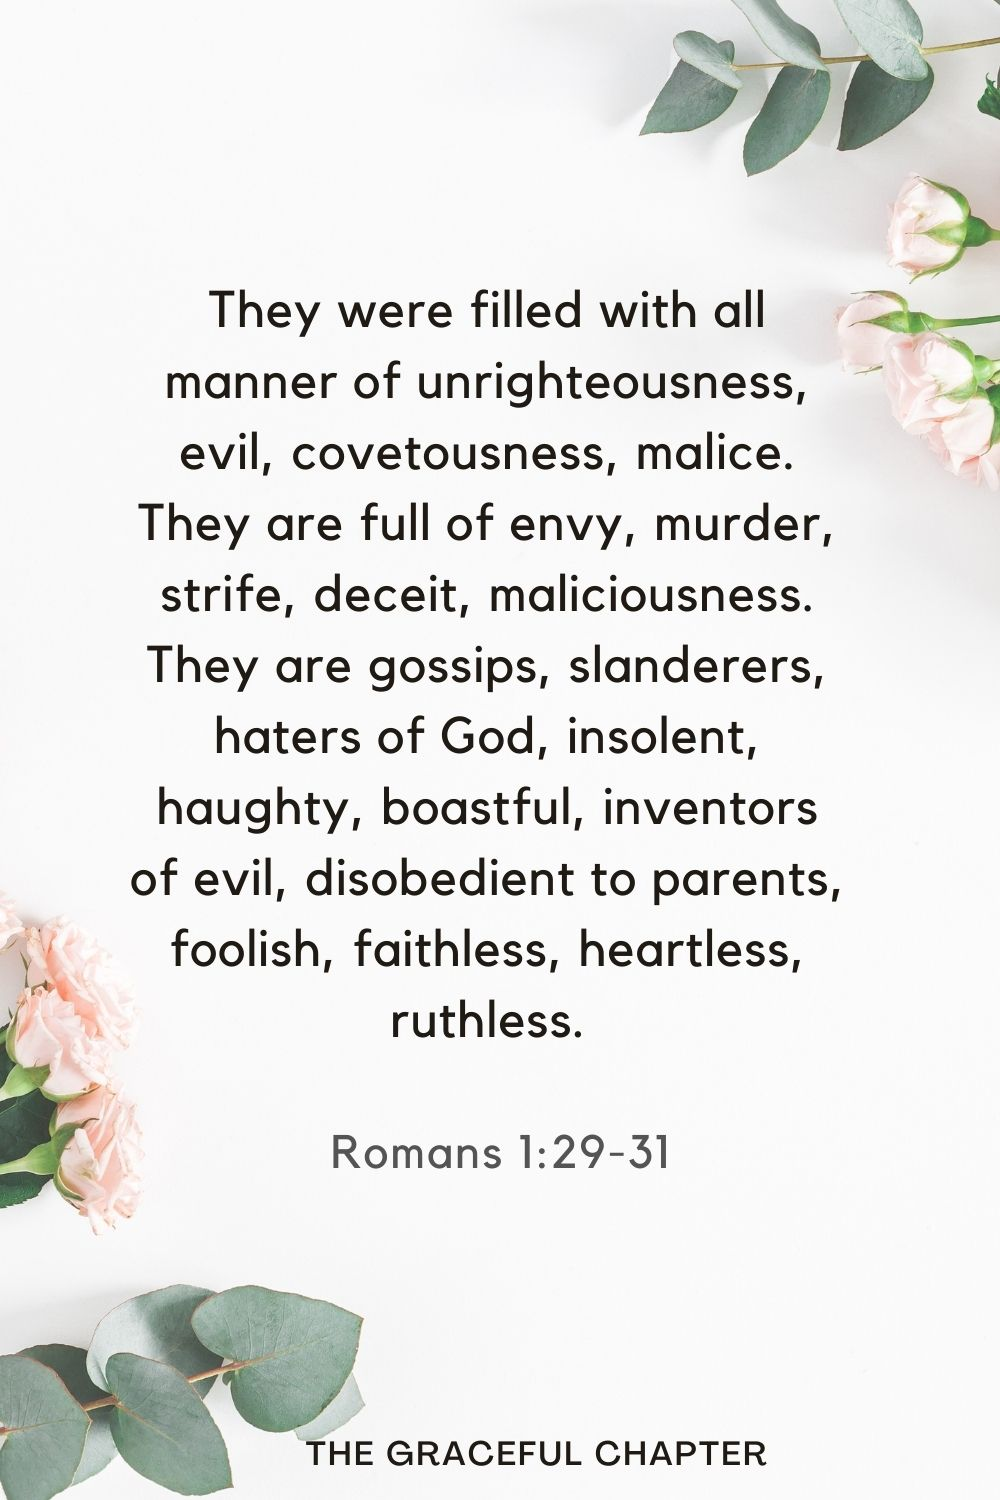 They were filled with all manner of unrighteousness, evil, covetousness, malice. They are full of envy, murder, strife, deceit, maliciousness. They are gossips,slanderers, haters of God, insolent, haughty, boastful, inventors of evil, disobedient to parents, foolish, faithless, heartless, ruthless. Romans 1:29-31